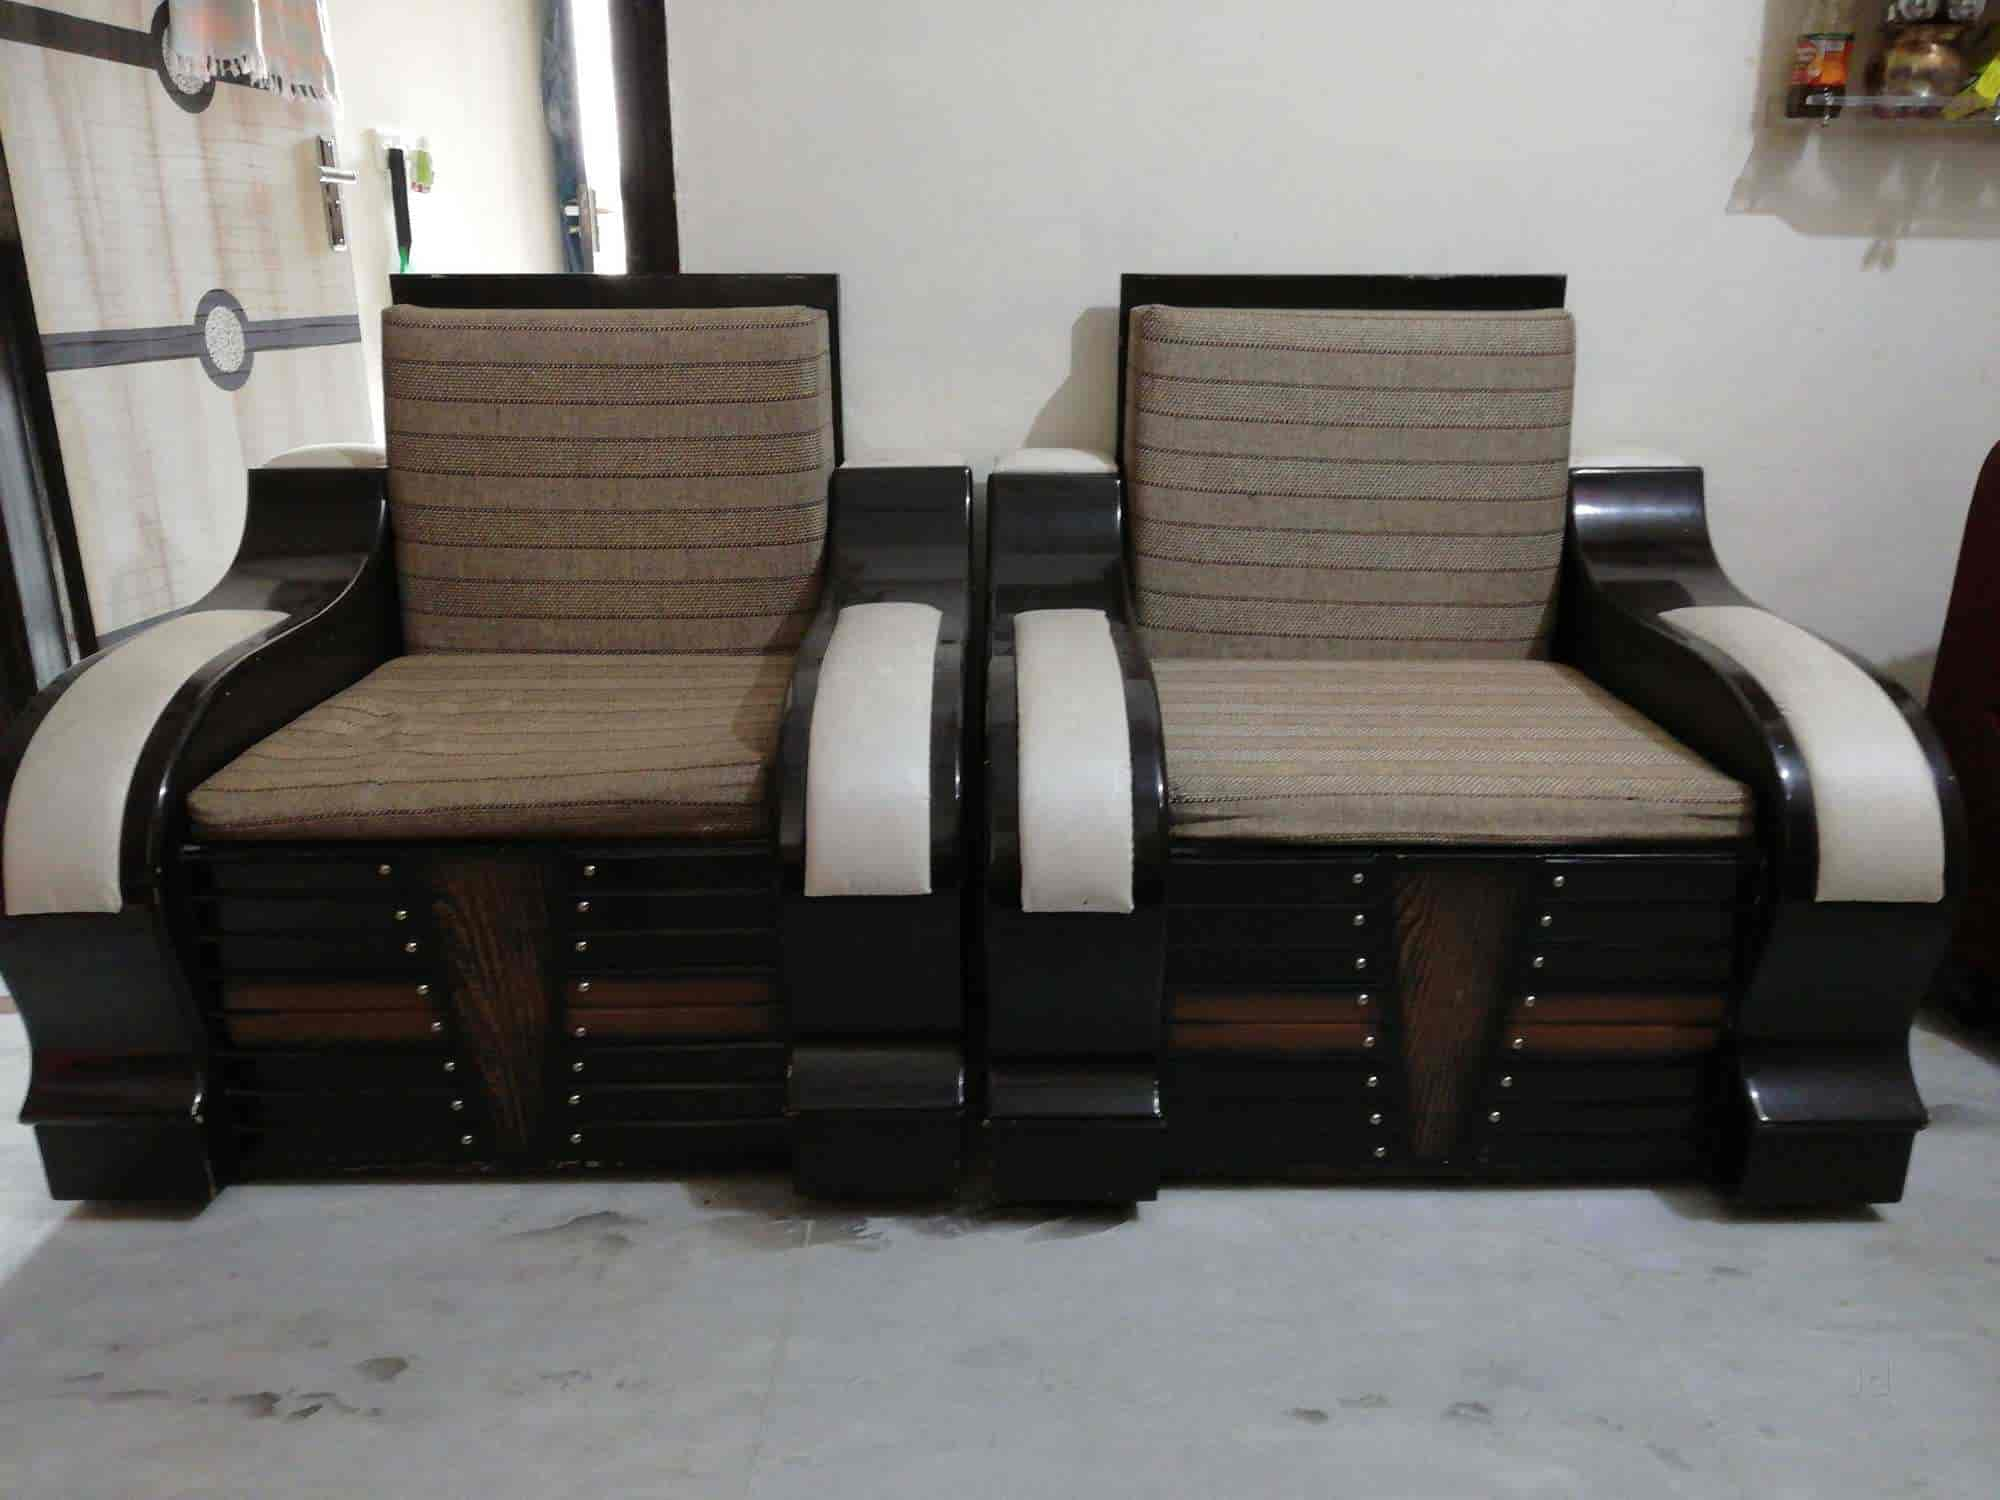 Terrific Top 100 Second Hand Furniture Buyers In Delhi Best Old Caraccident5 Cool Chair Designs And Ideas Caraccident5Info